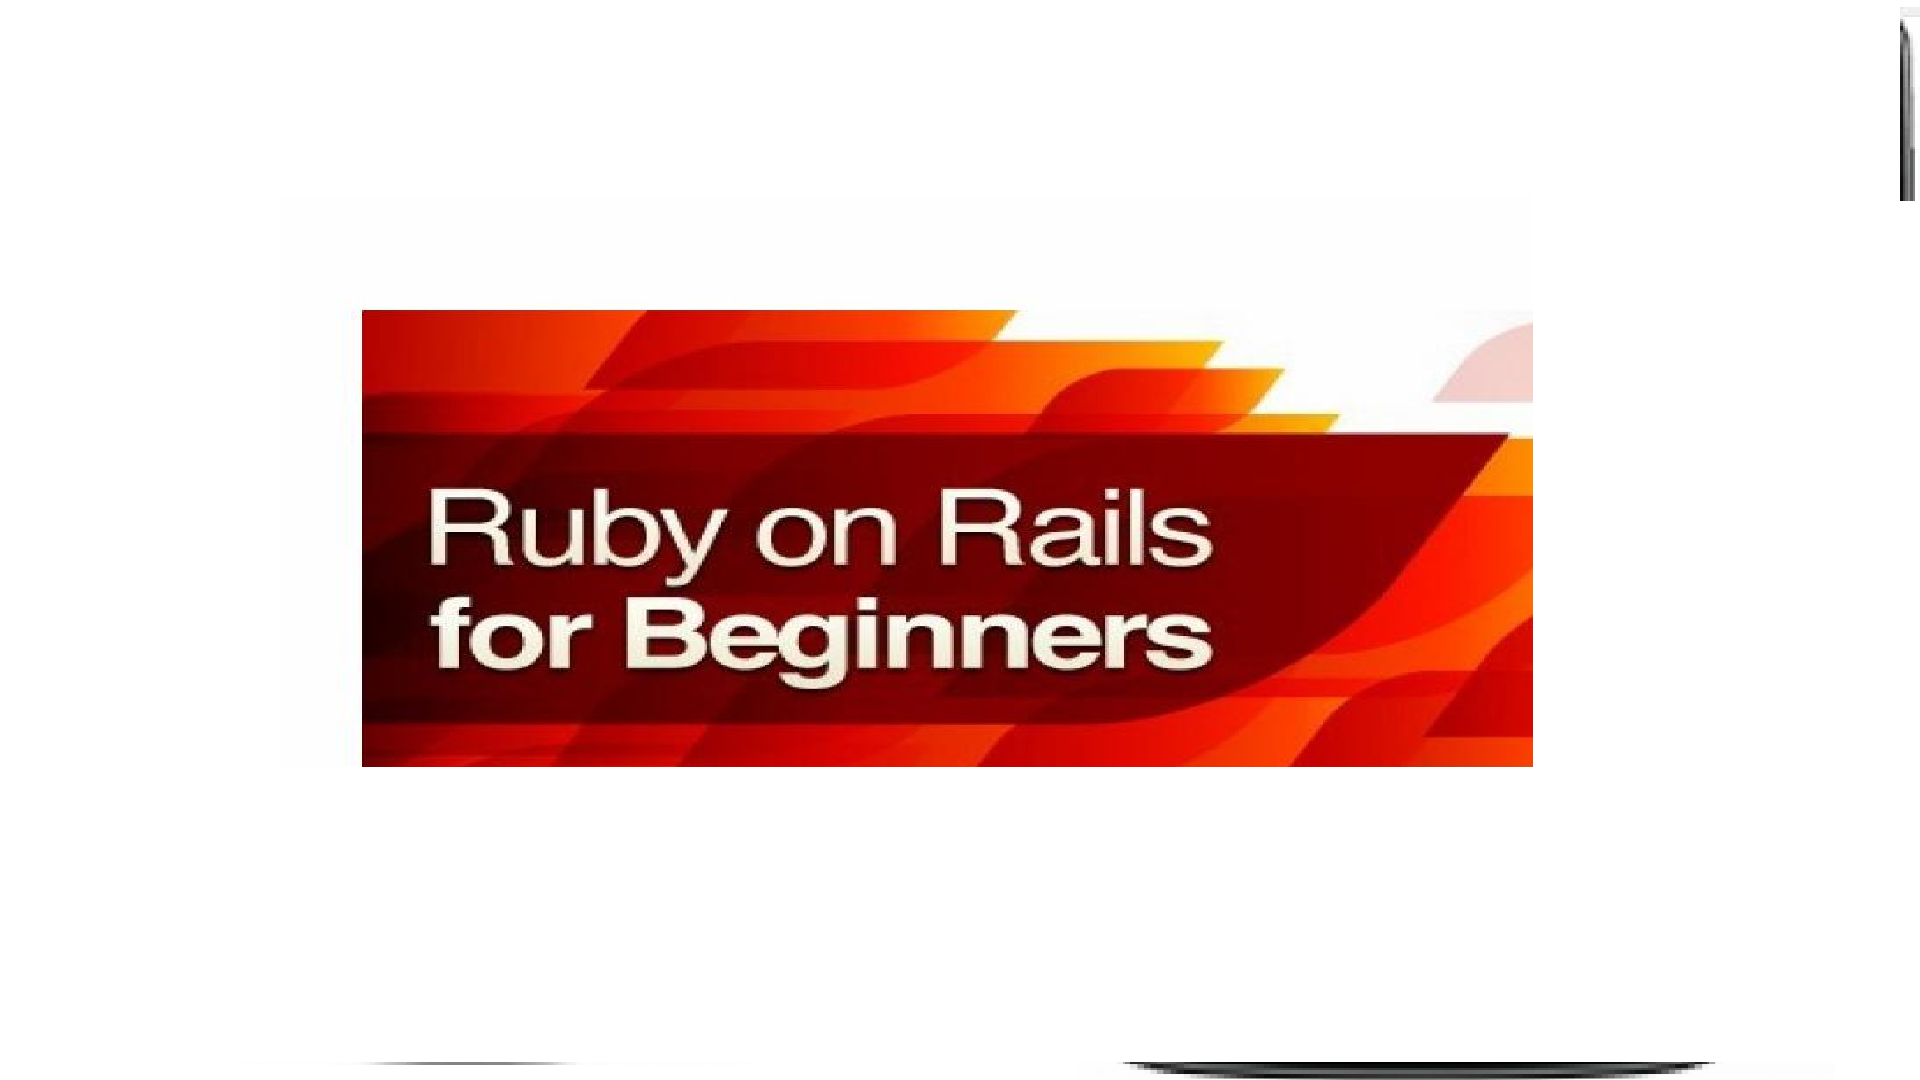 ruby - Amazon Product API and Rails - Stack Overflow